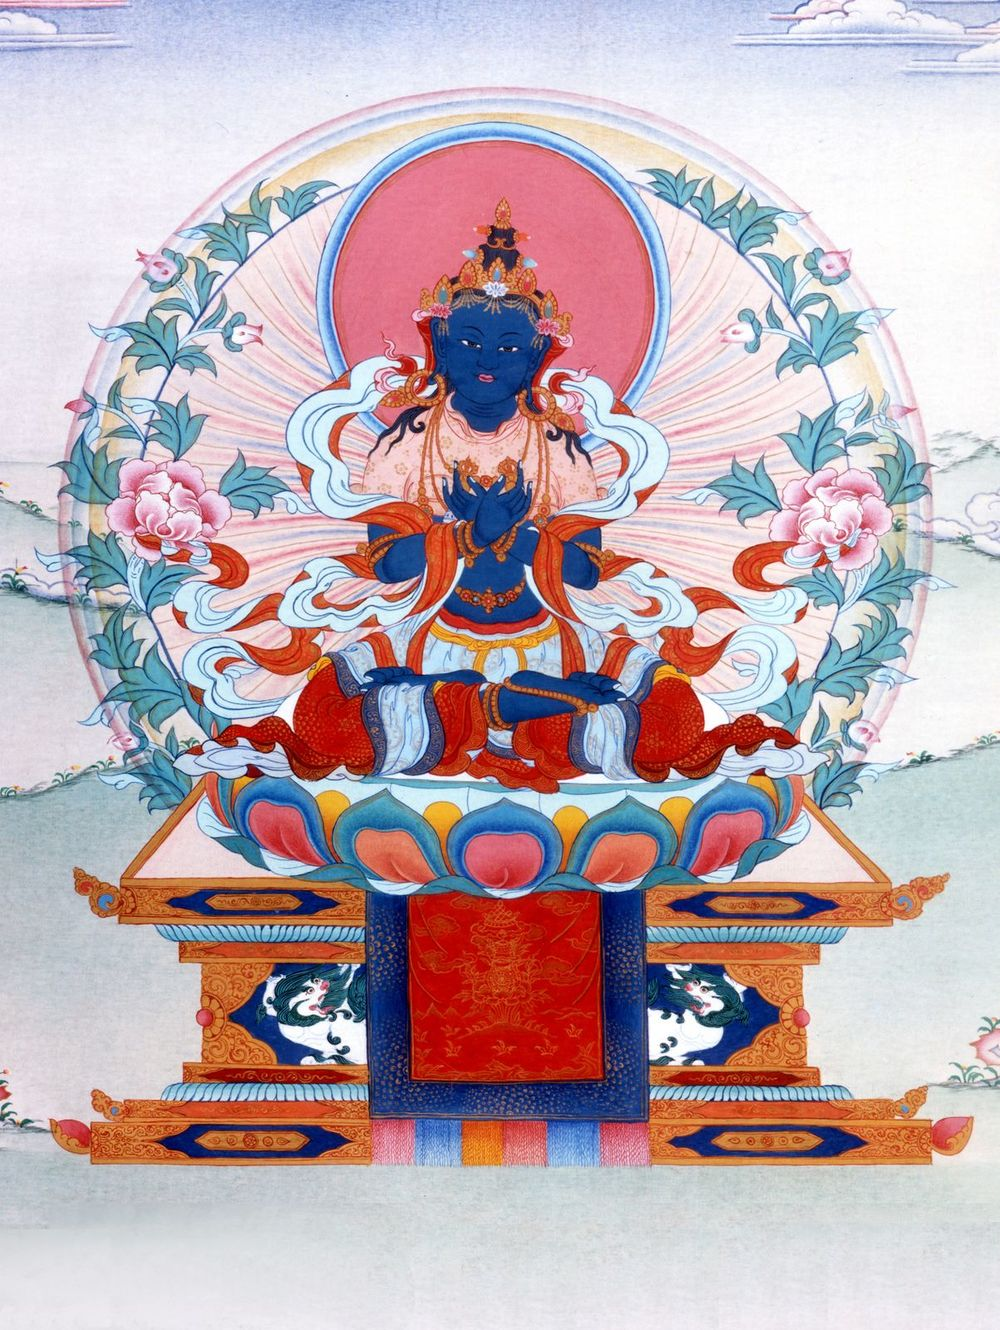 Buddha Vajradhara to whose transcendental state the deity yoga practitioner aspires